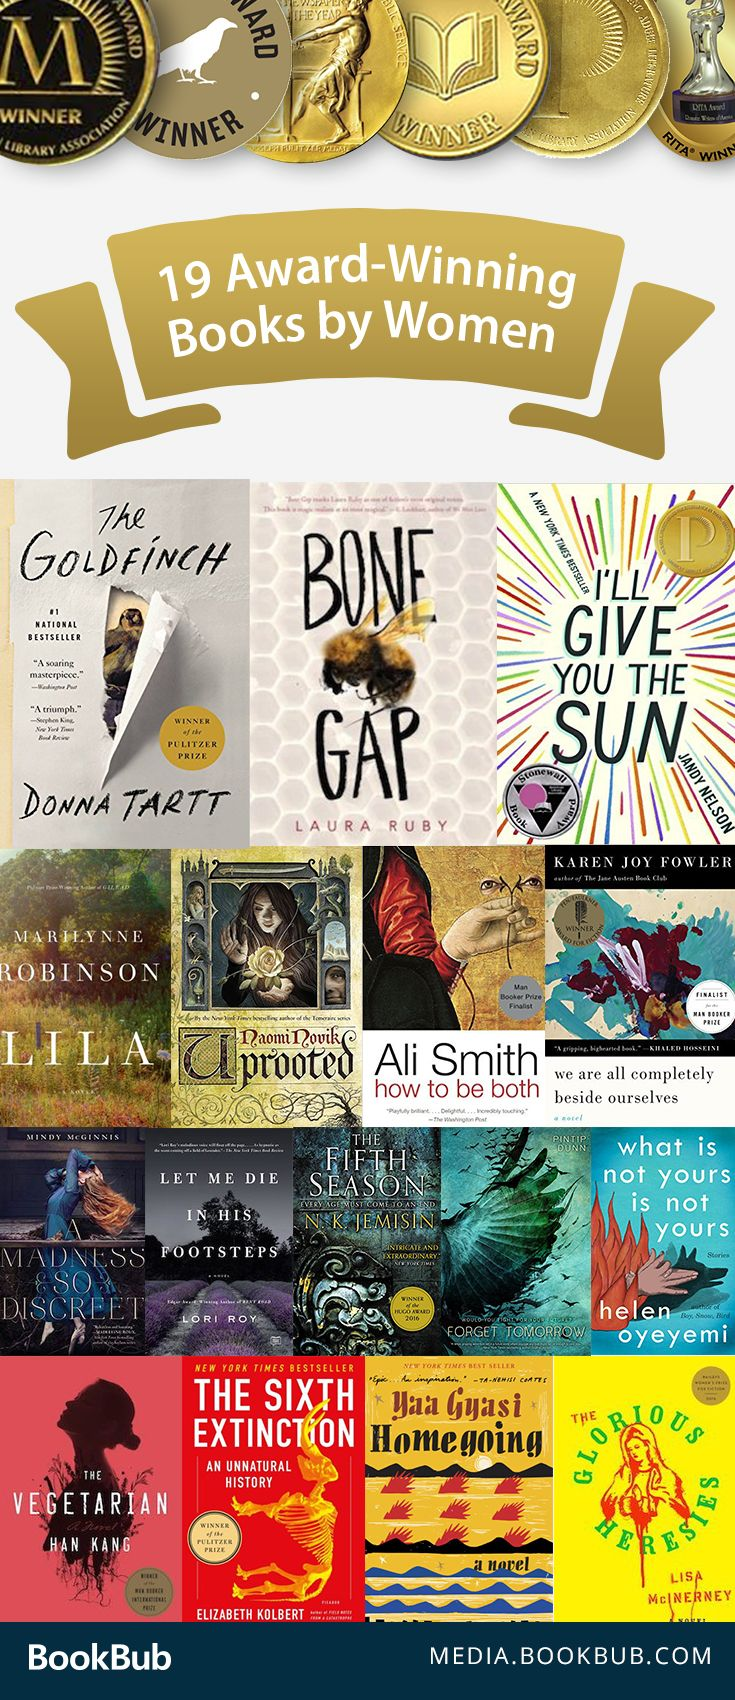 Amazon.com: Book Awards: Books